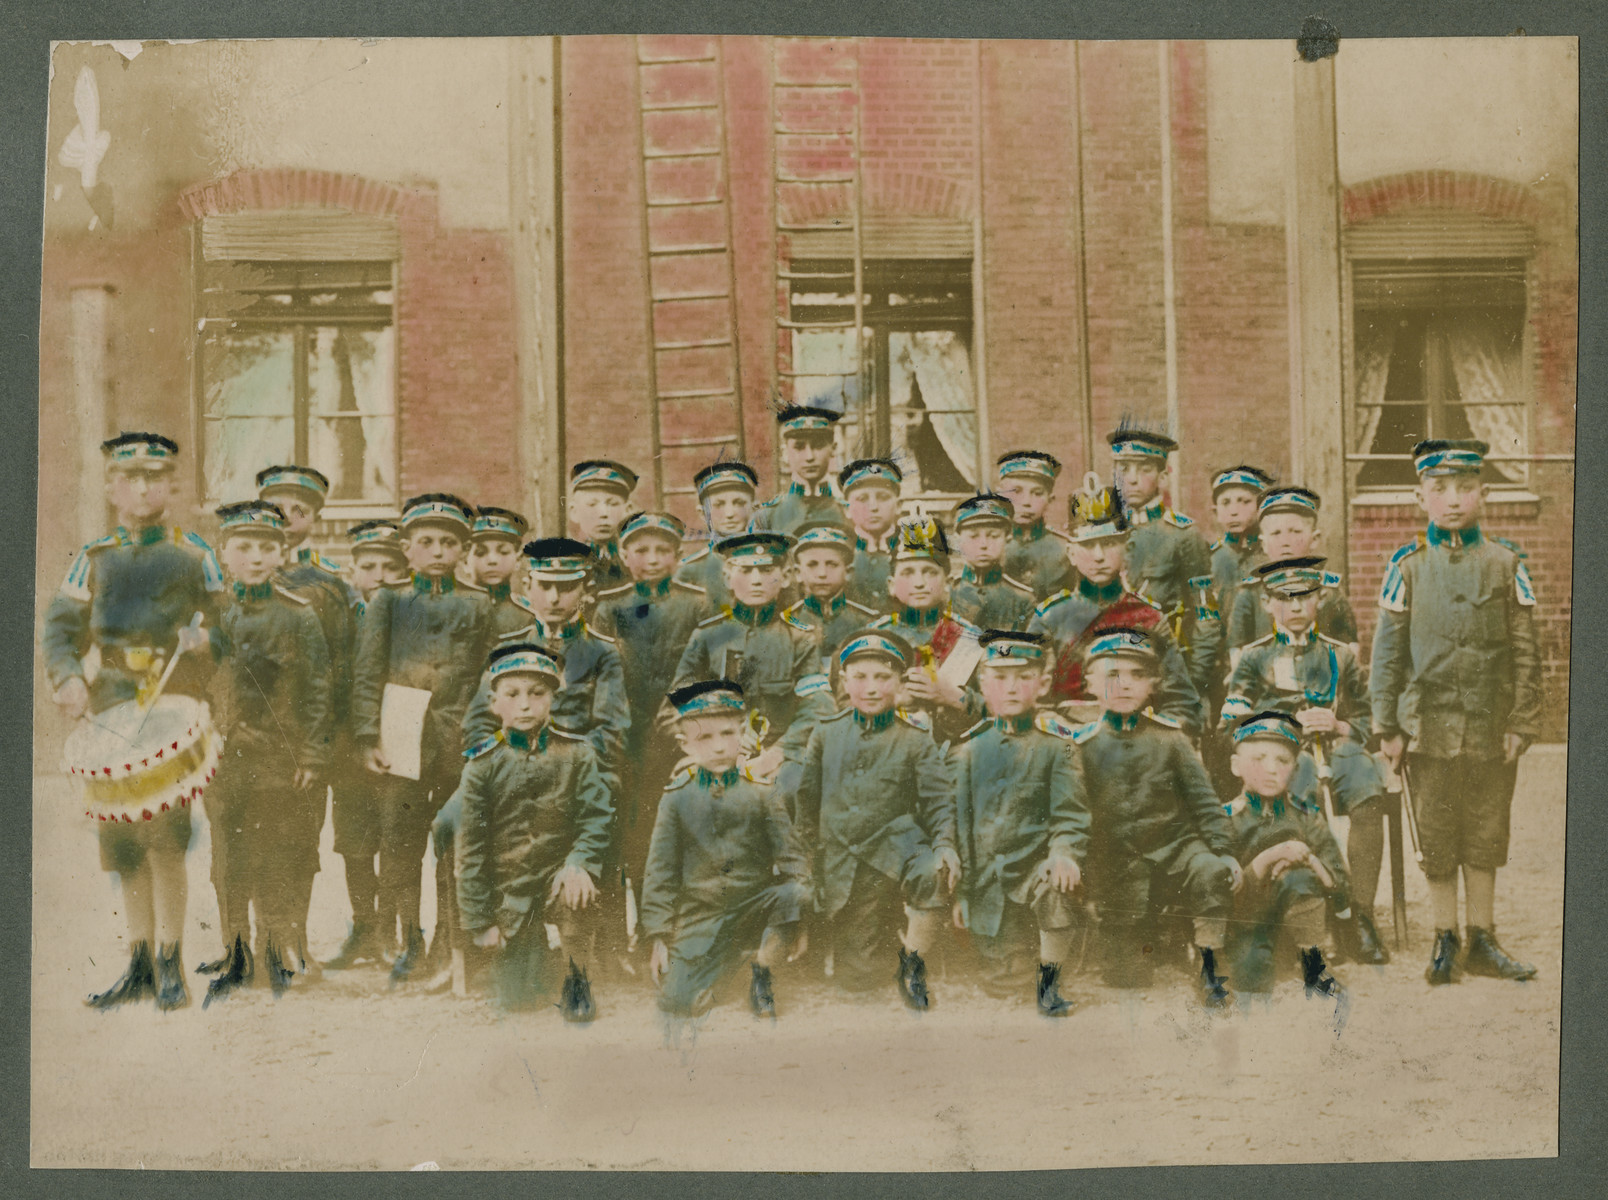 Illustrated postcard showing children at the Baruch Auerbach Jewish orphanage in Berlin.